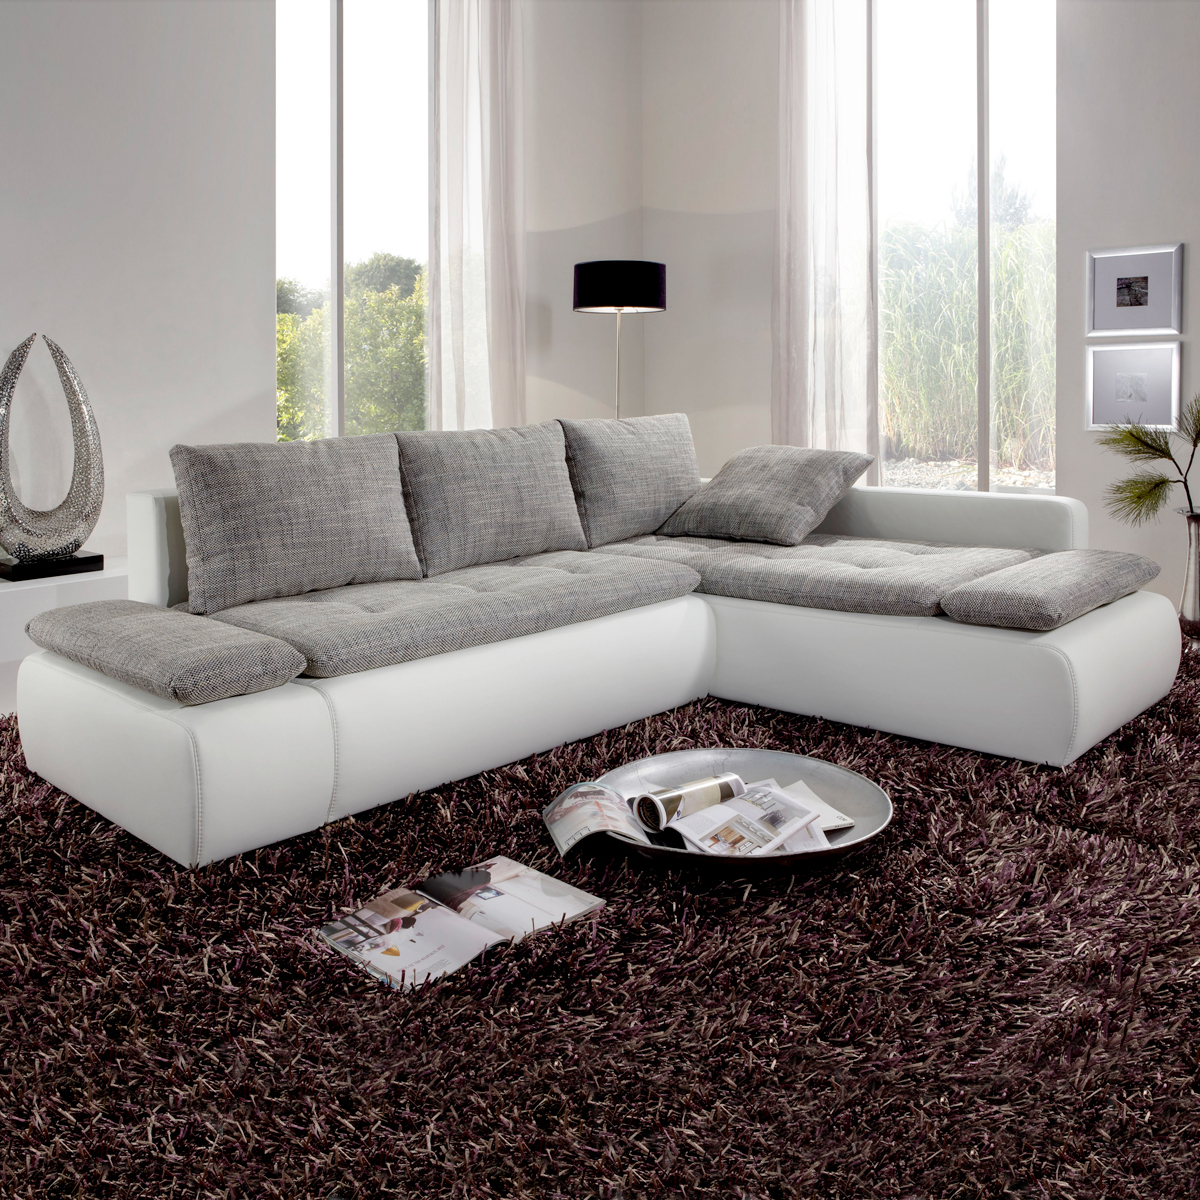 sofa saigon polsterecke in wei mit bettfunktion ebay. Black Bedroom Furniture Sets. Home Design Ideas